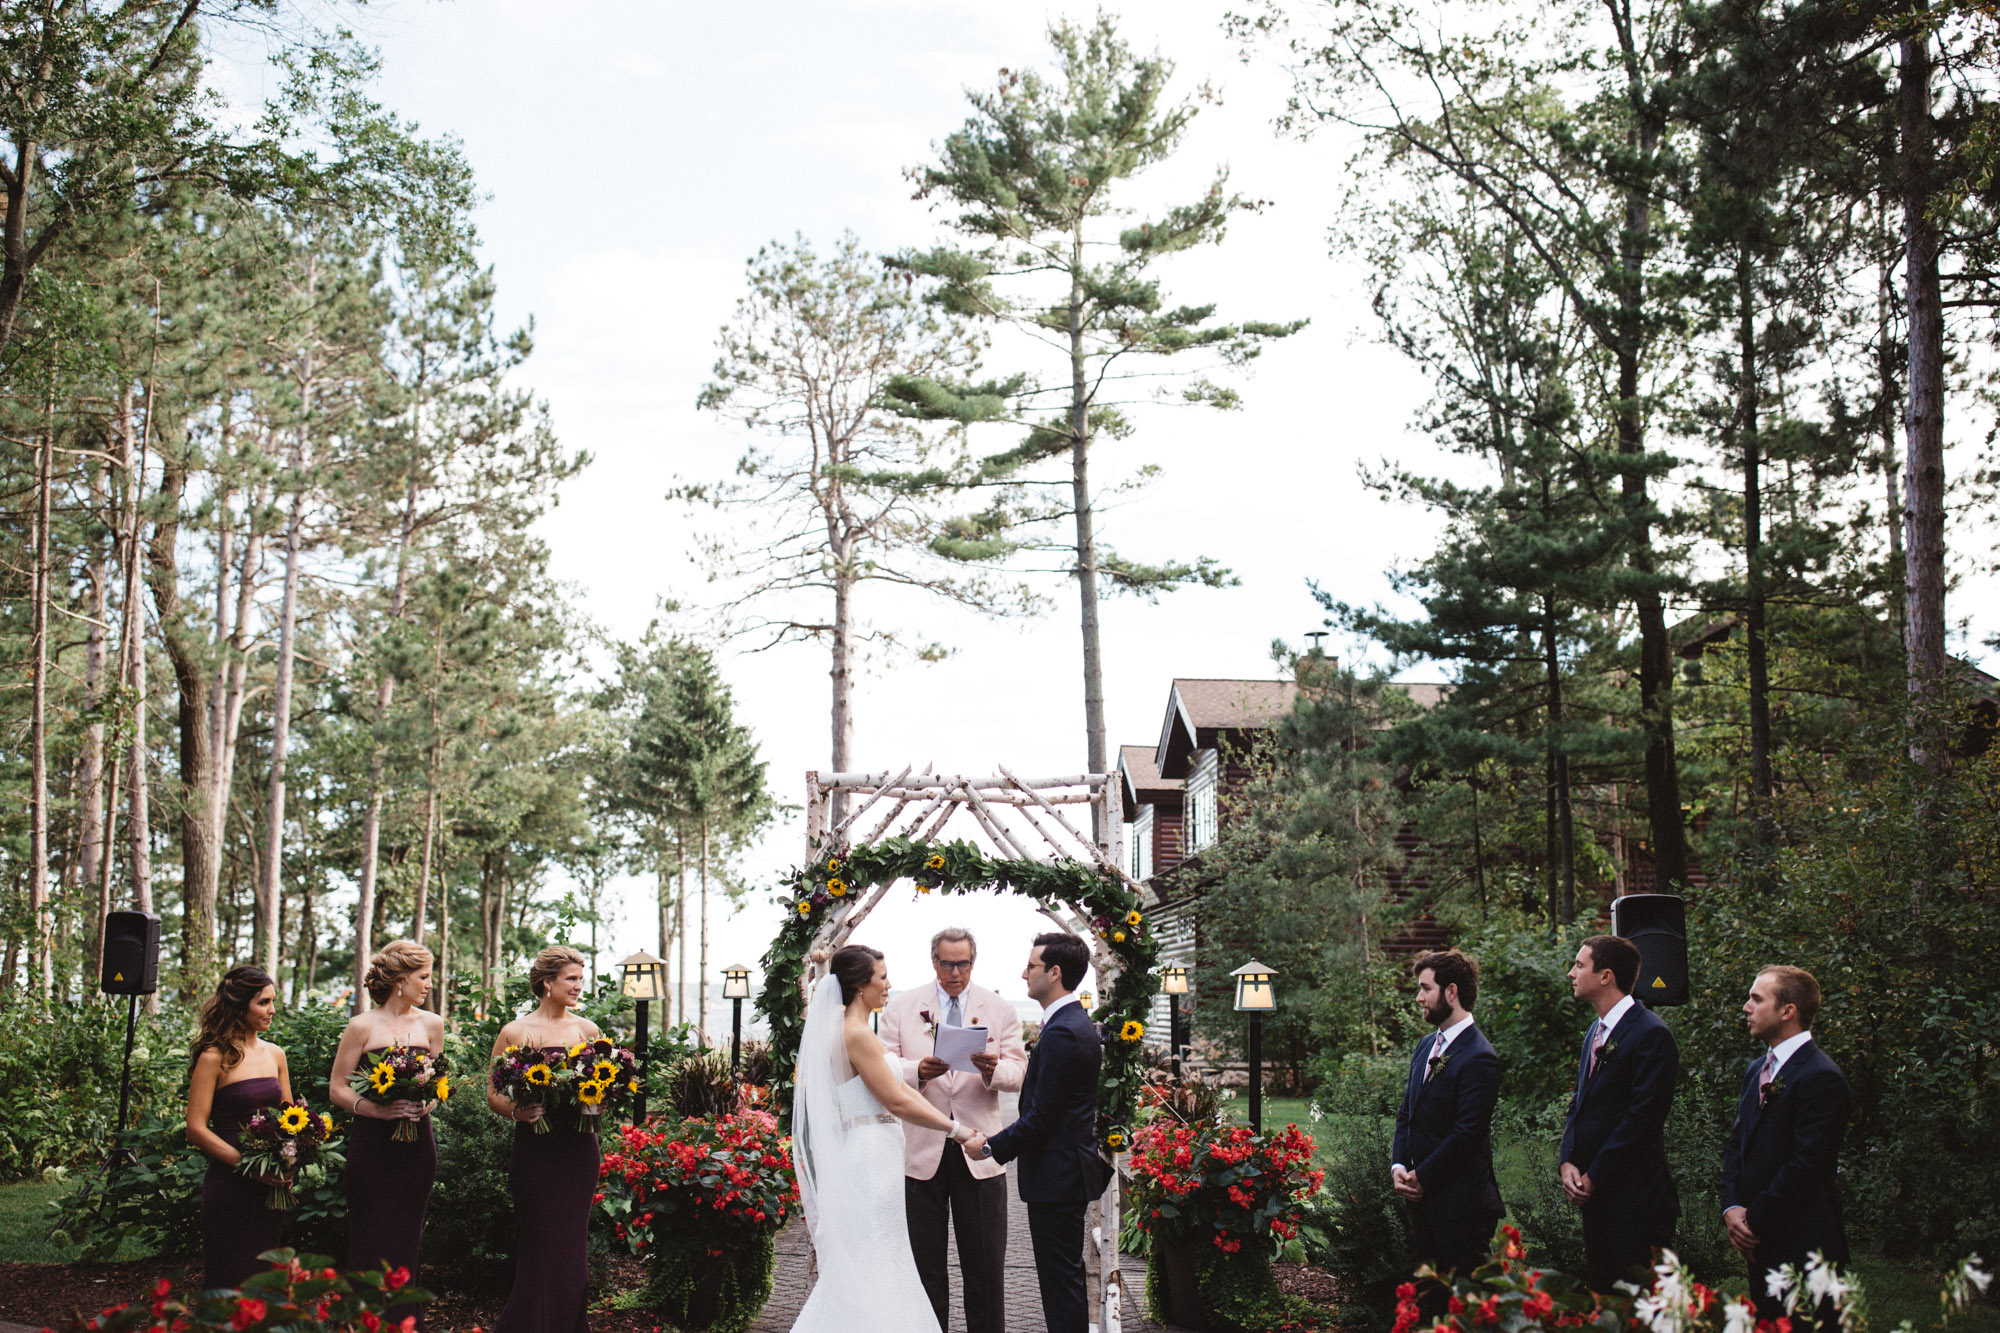 Beautiful outdoor wedding ceremony at Grand View Lodge by Britt DeZeeuw photography